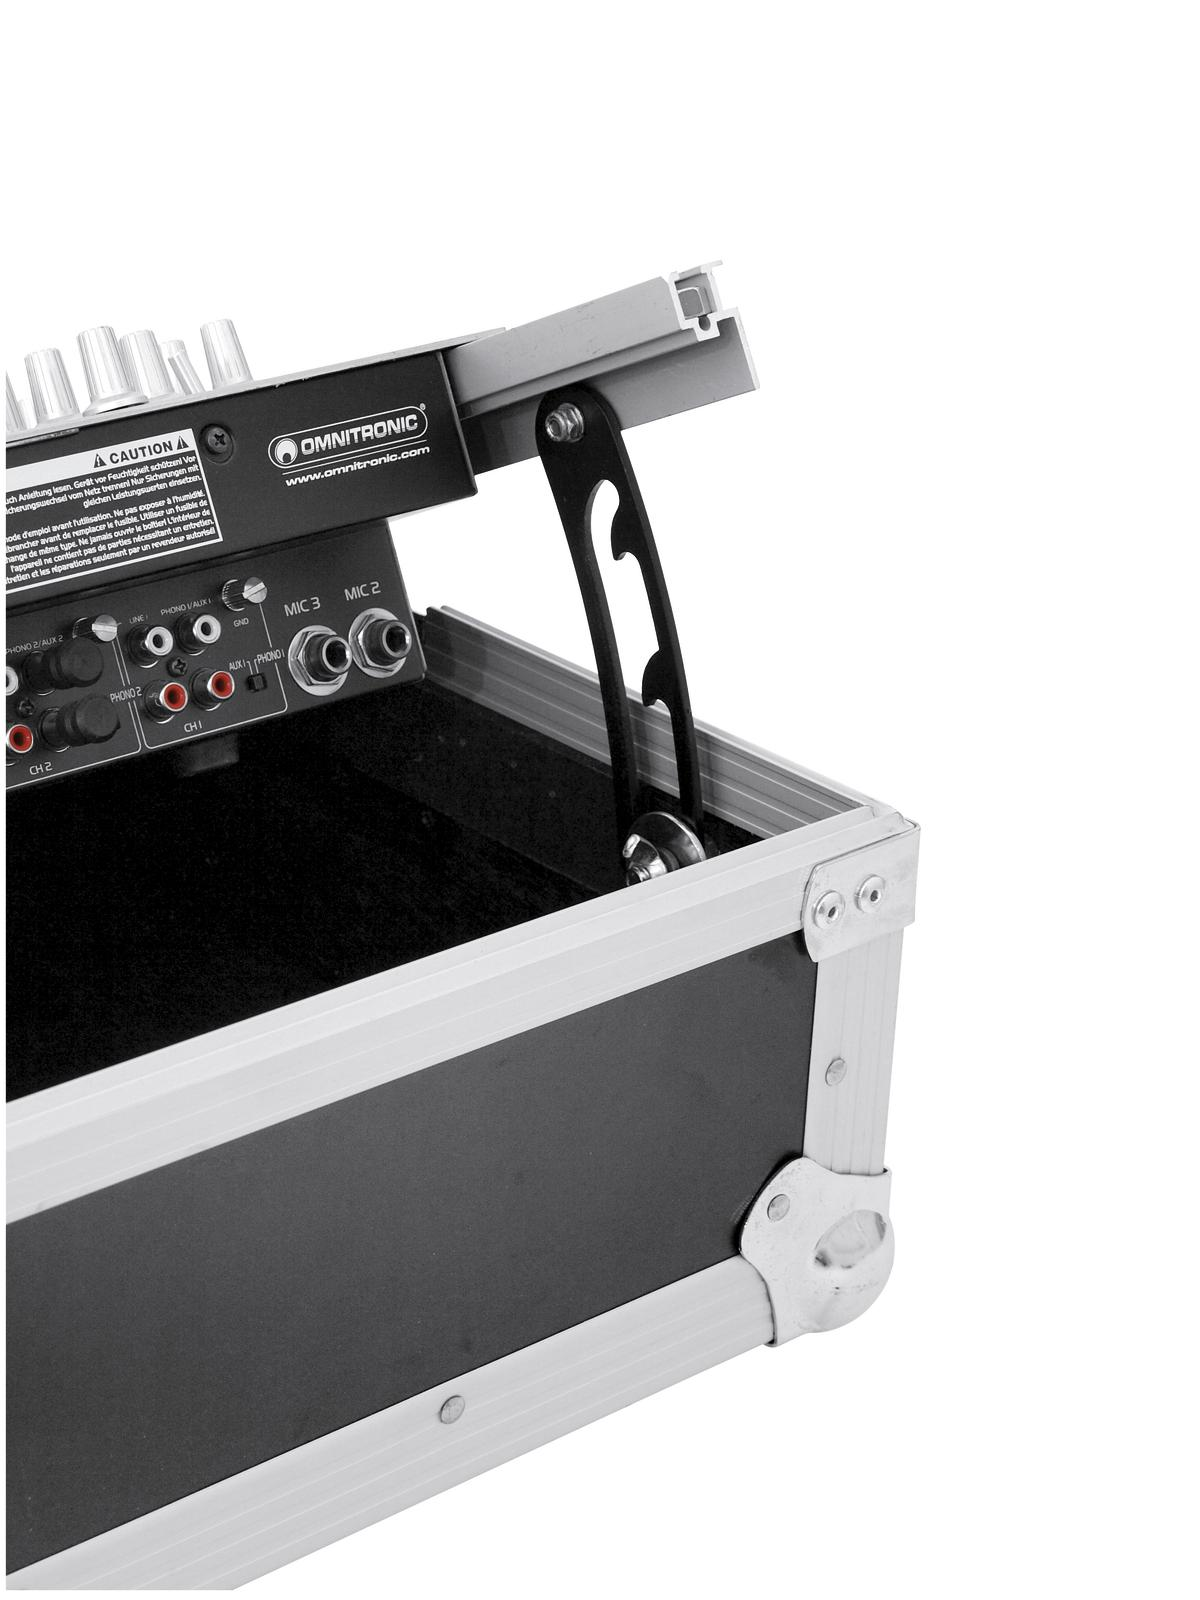 Flight Case Custodia per Dj Mixer Audio Luci Inclinato 8U Roadinger Pro MCV-19